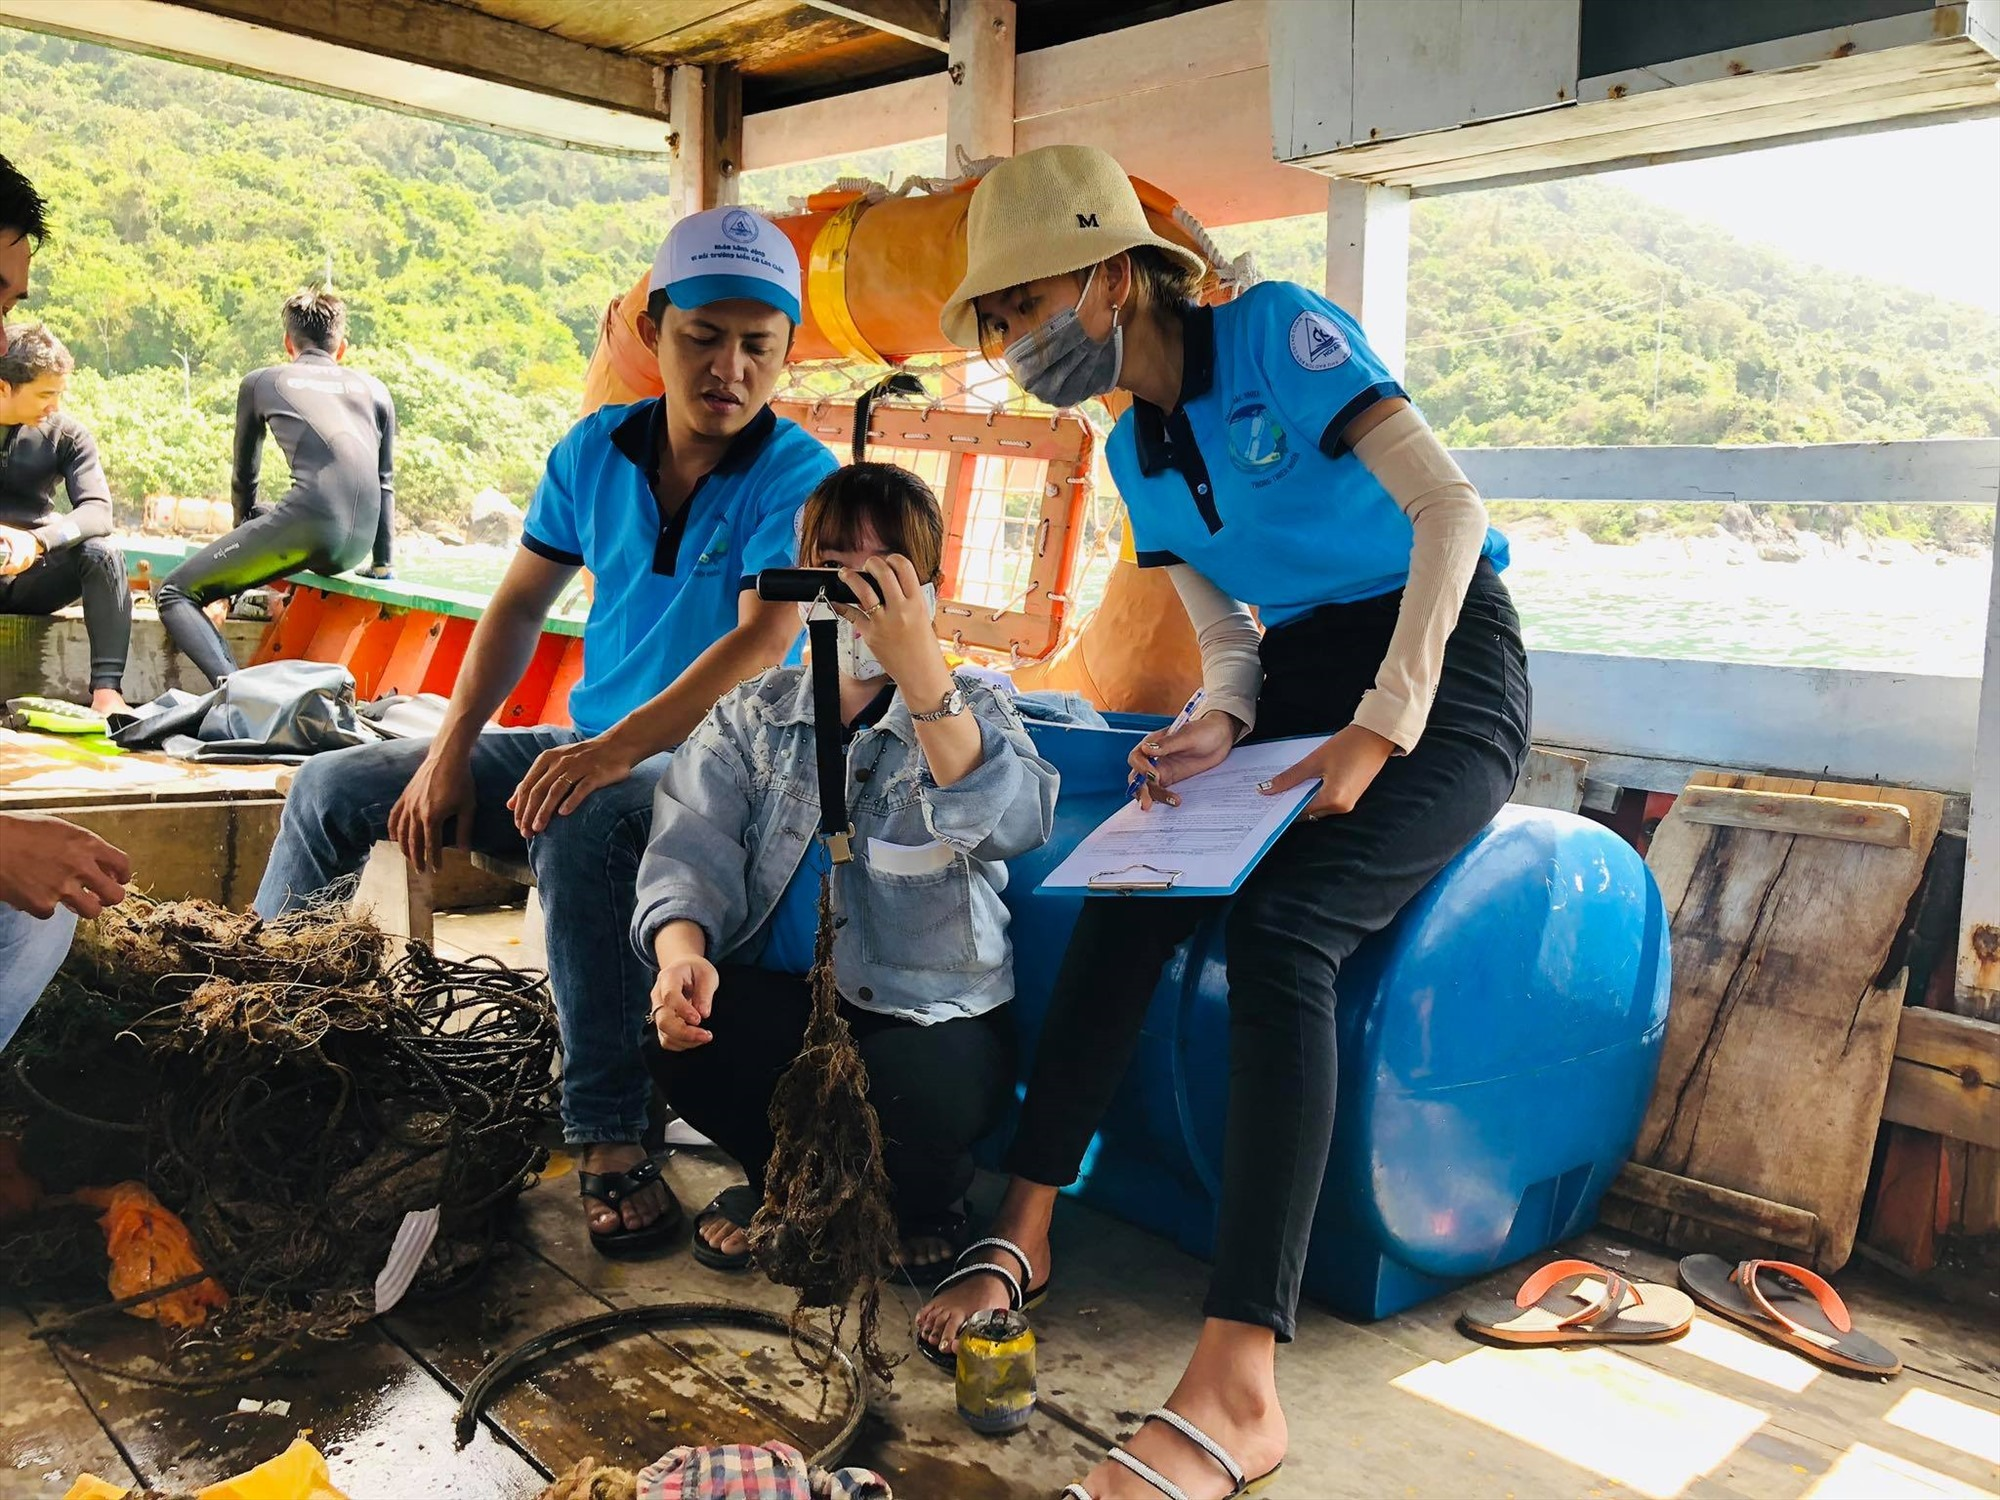 Volunteers taking part in the Cham Islands cleanup.